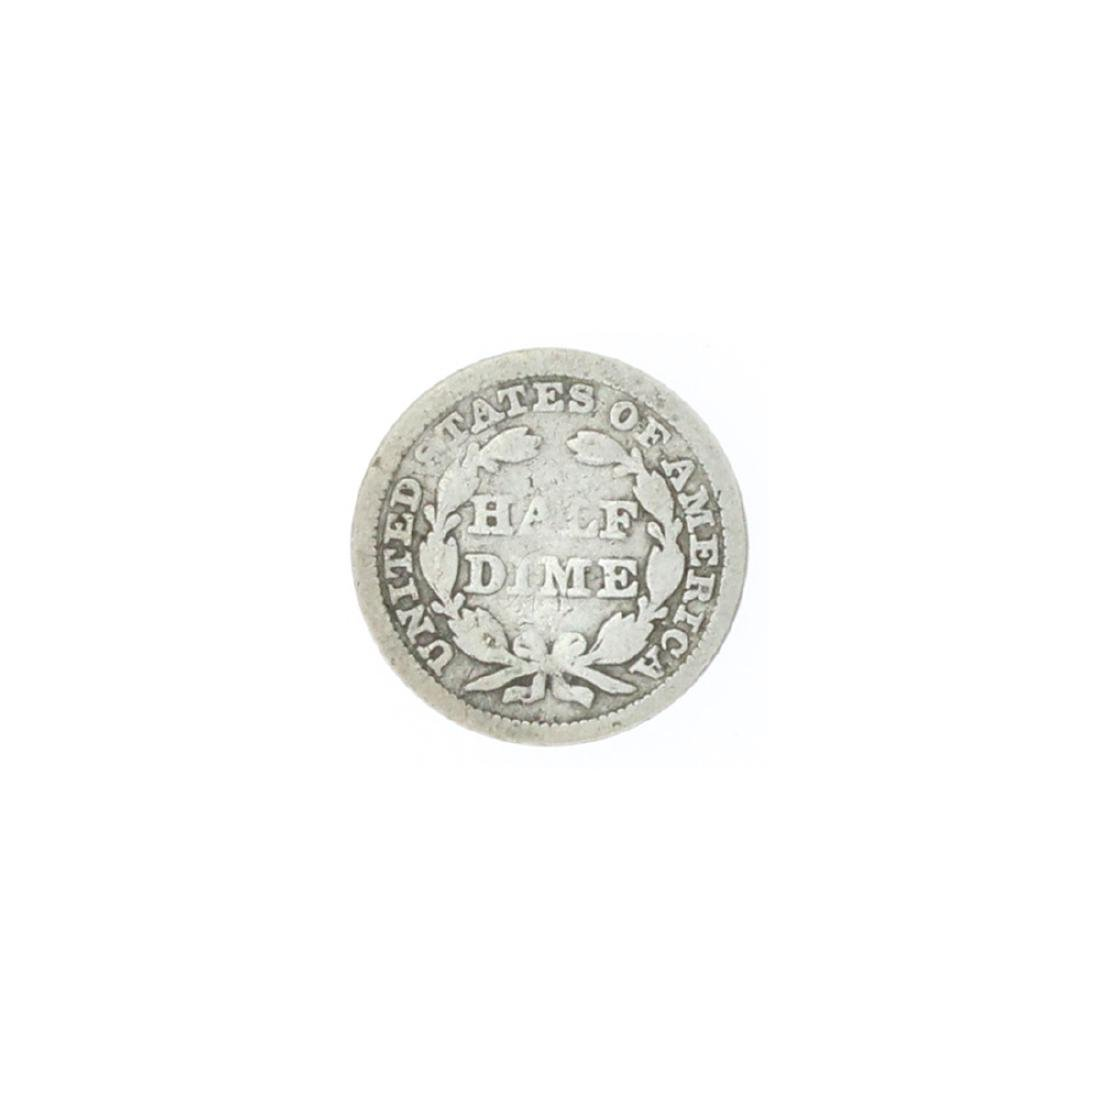 1857 Liberty Seated Half Dime Coin - 2